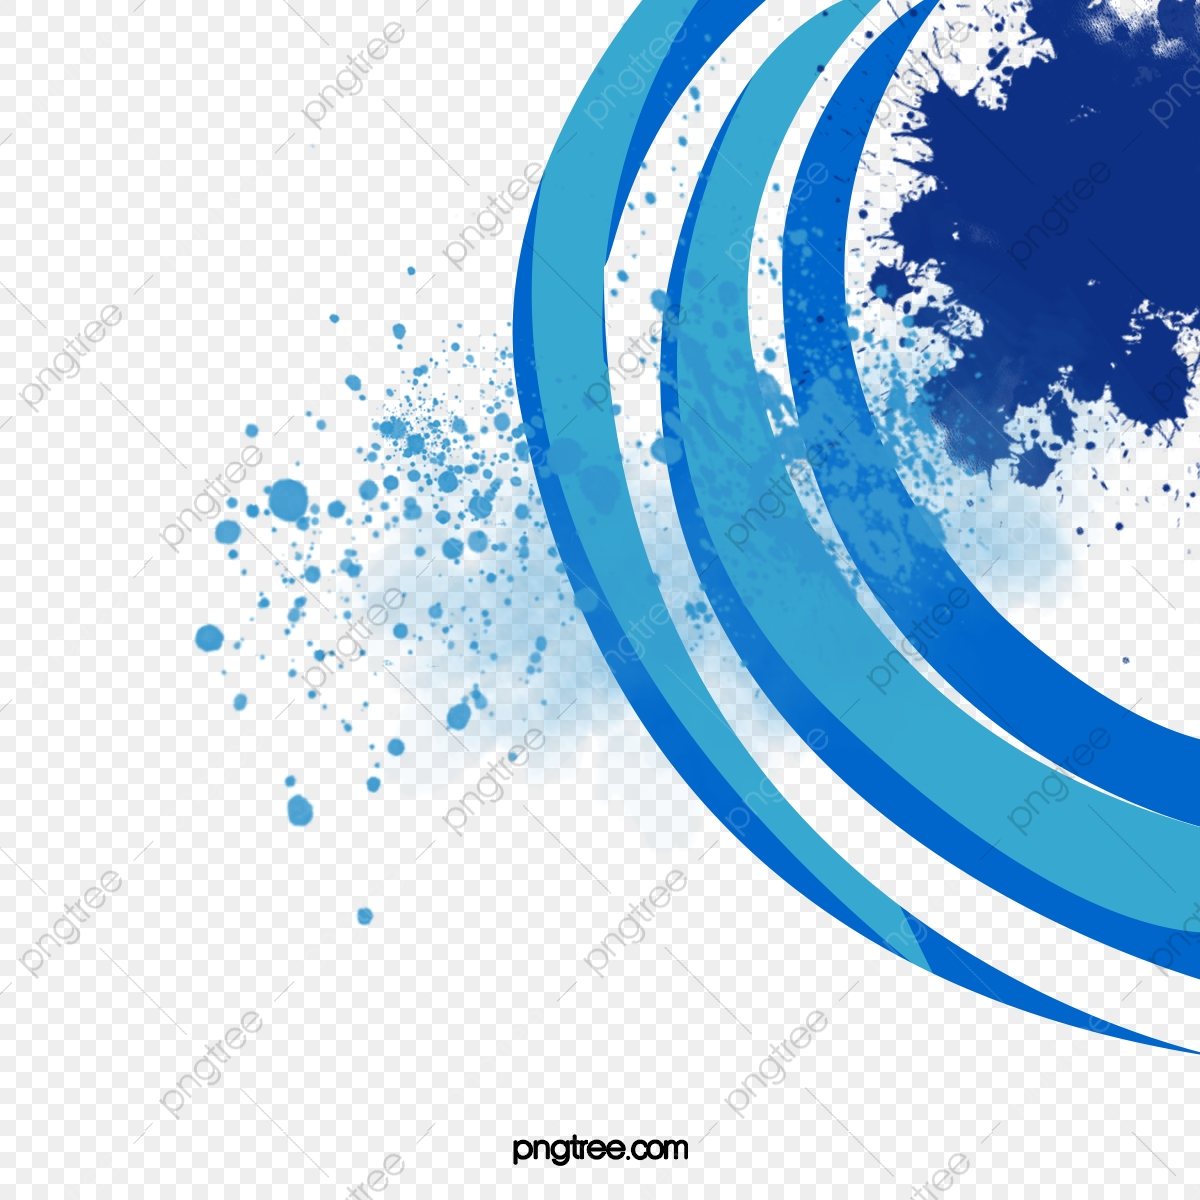 Ppt Background Blue And White Semicircular, Ppt, Background